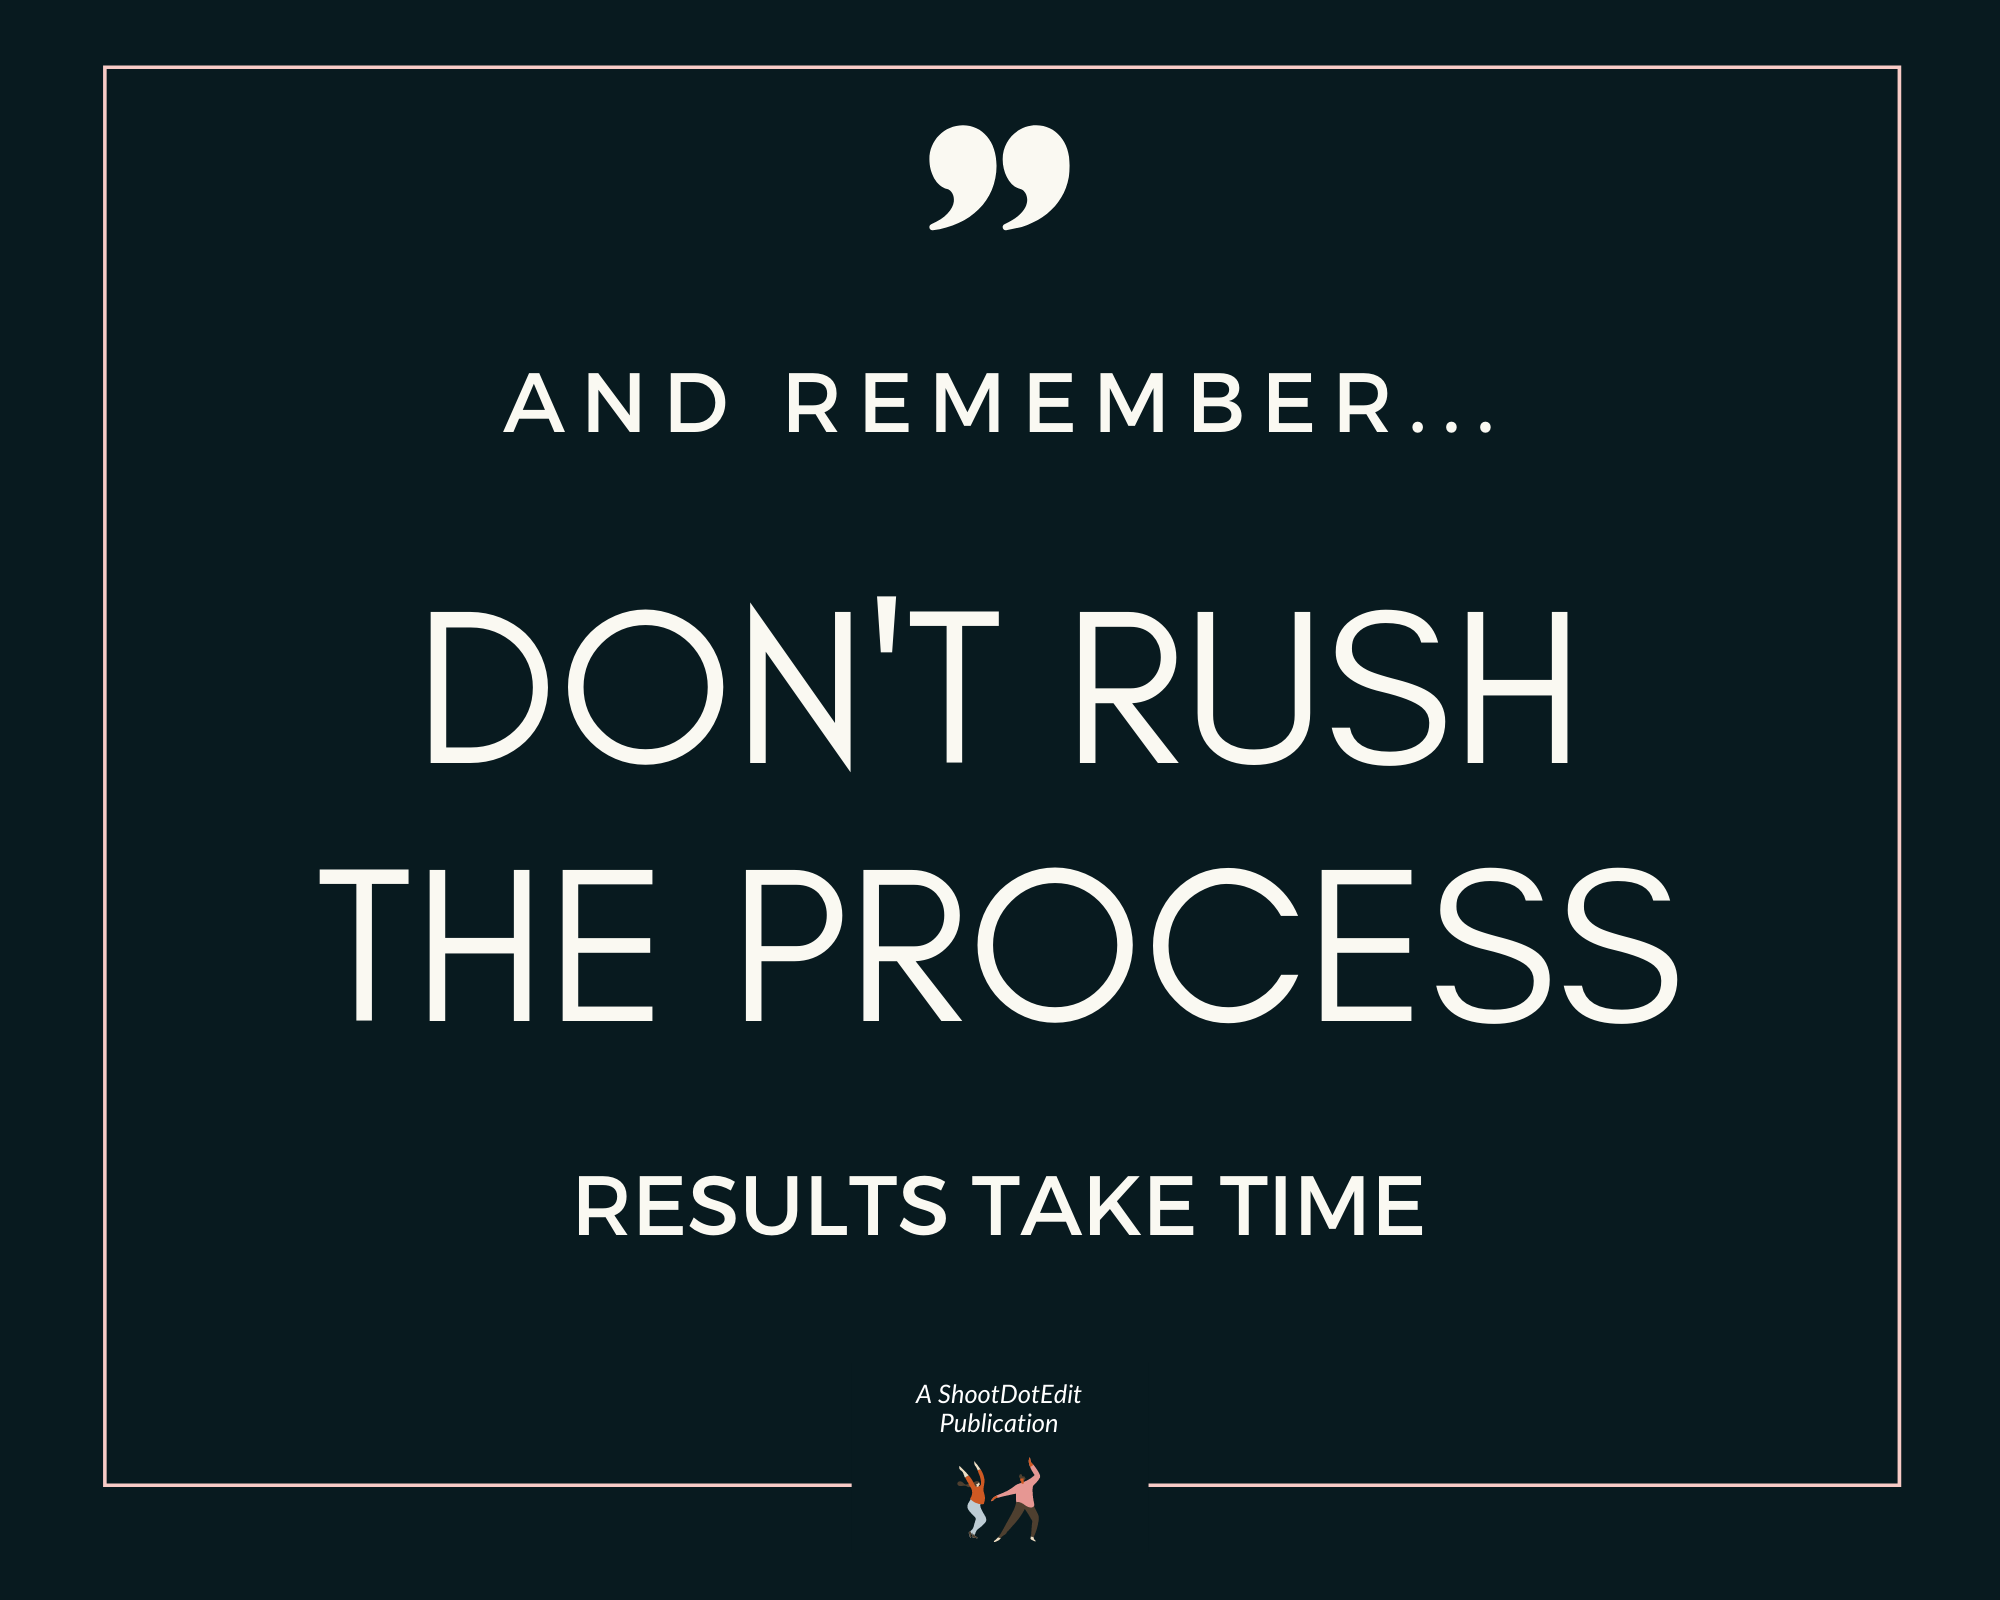 Infographic - And remember don't rush the process results take time